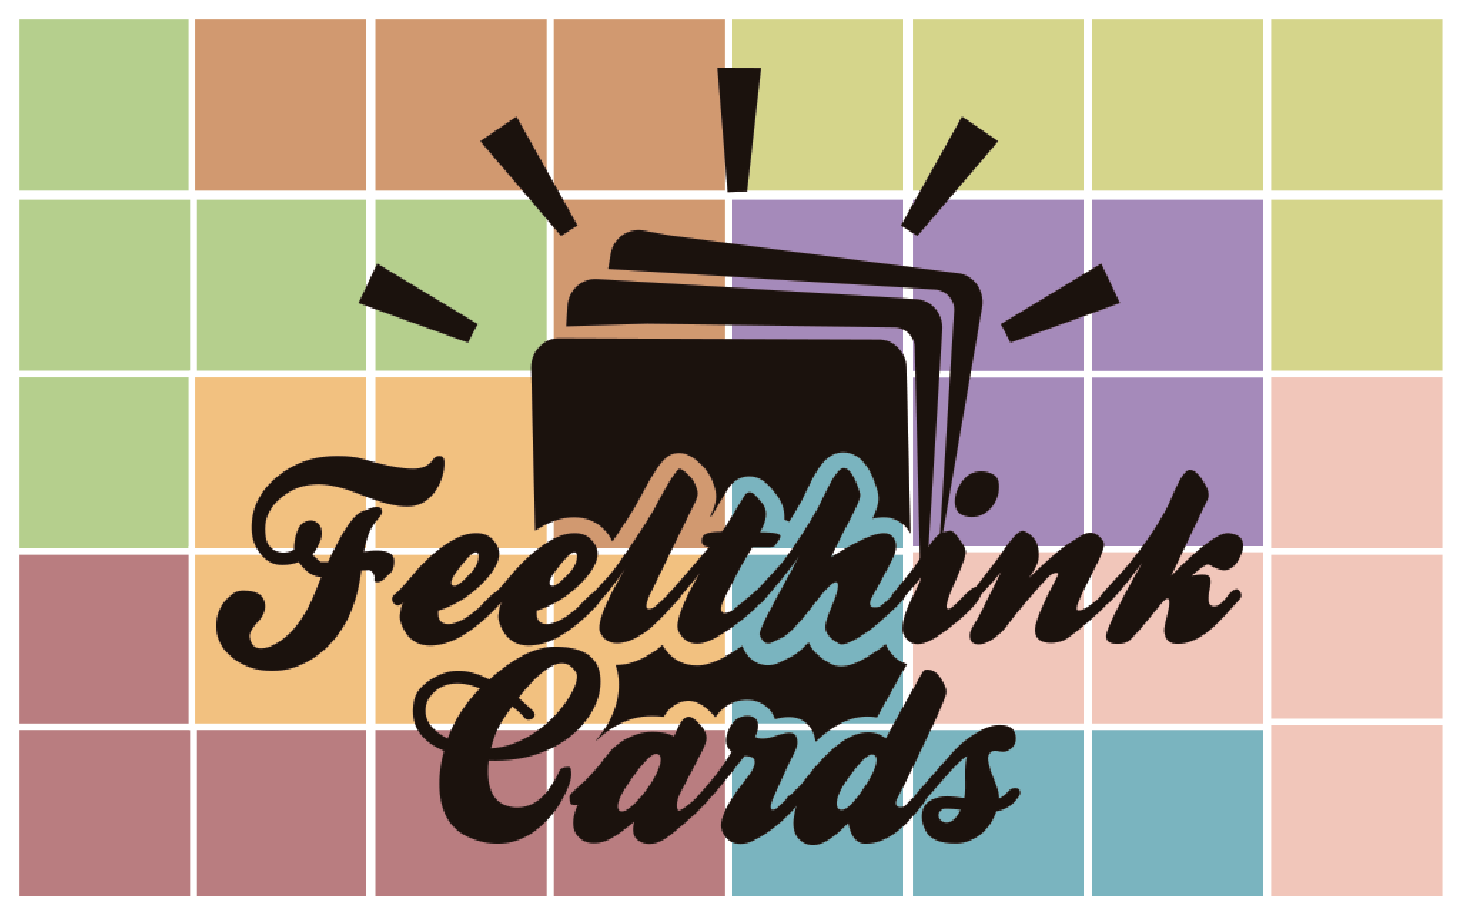 //conversaction.com/wp-content/uploads/2018/02/logo_FeelthinkCards_color.png